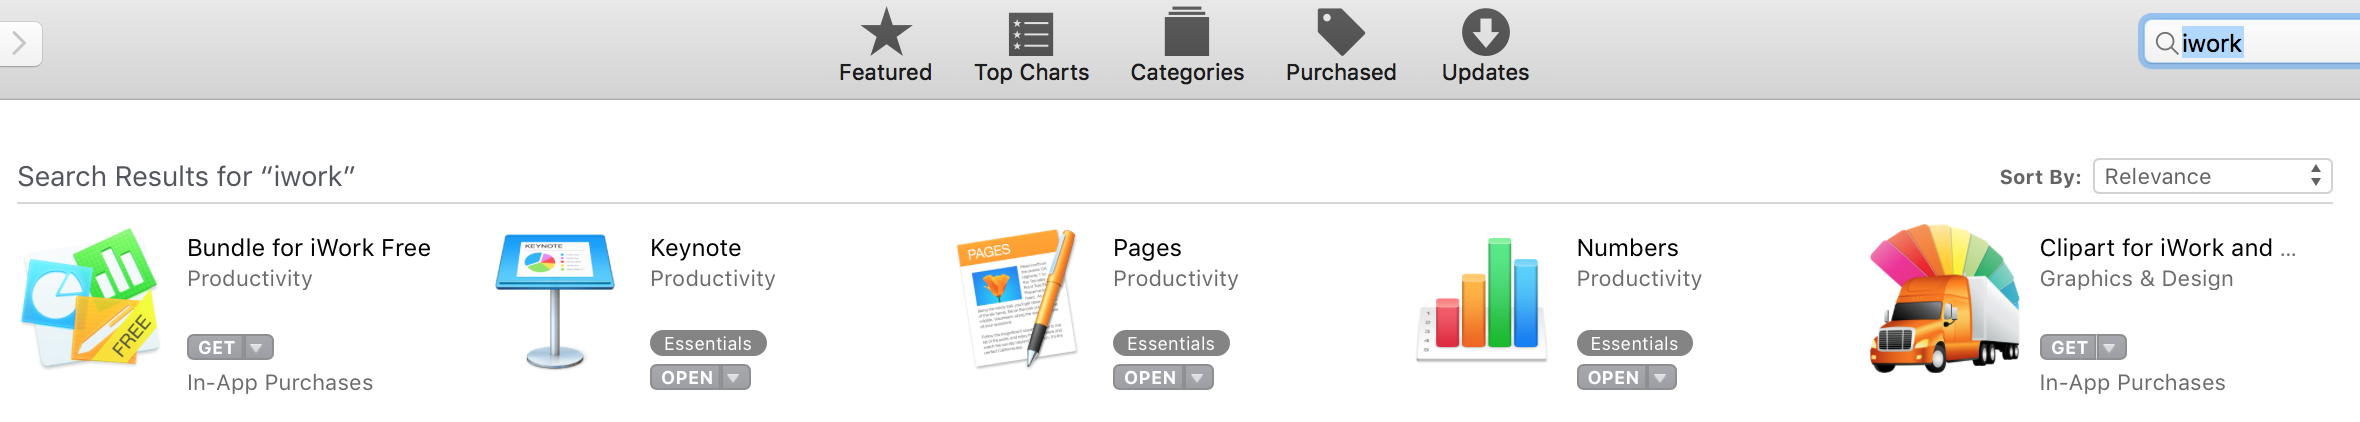 Tackle tasks with iWork